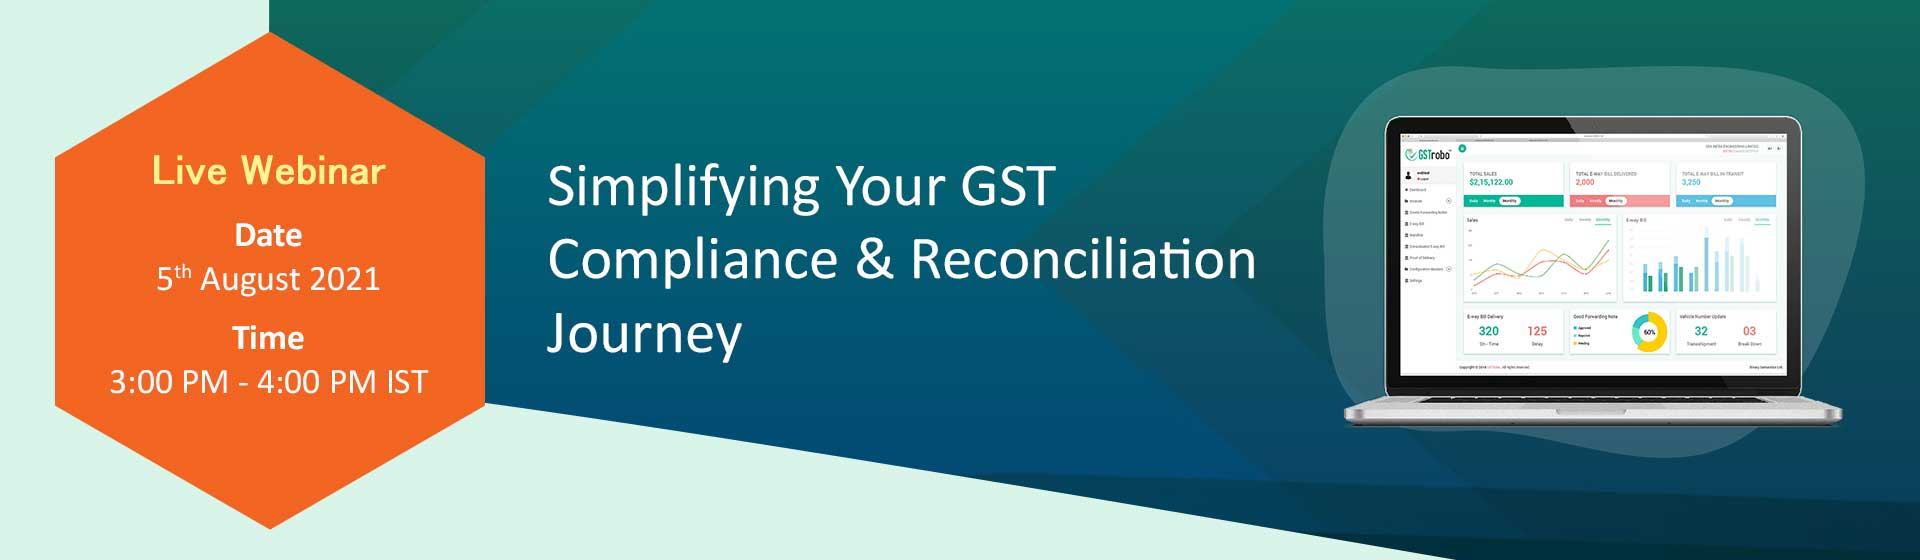 Live Webinar on Simplifying Your GST Compliance & Reconciliation Journey!